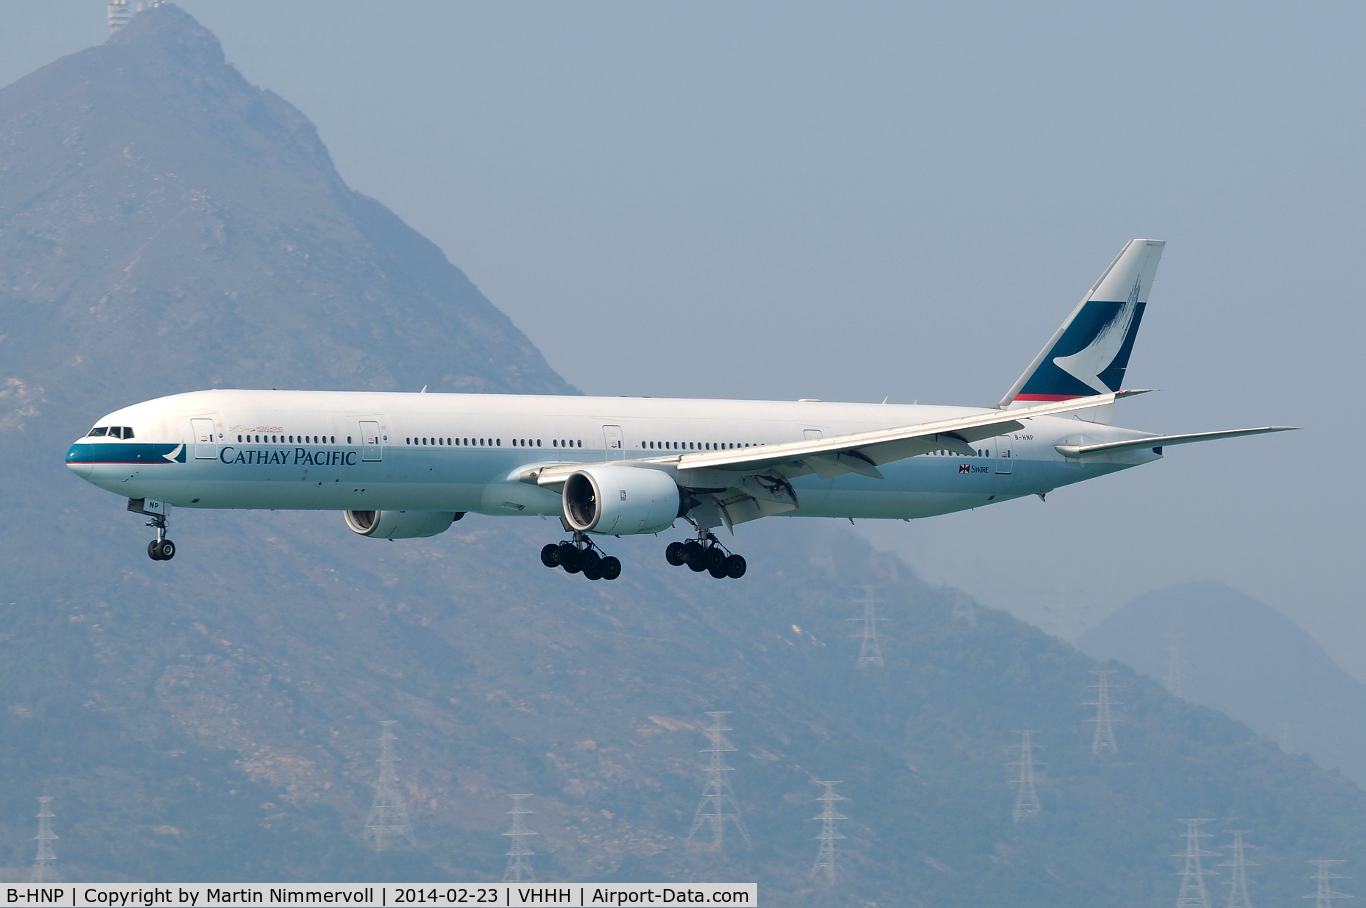 B-HNP, 2005 Boeing 777-367 C/N 34243, Cathay Pacific